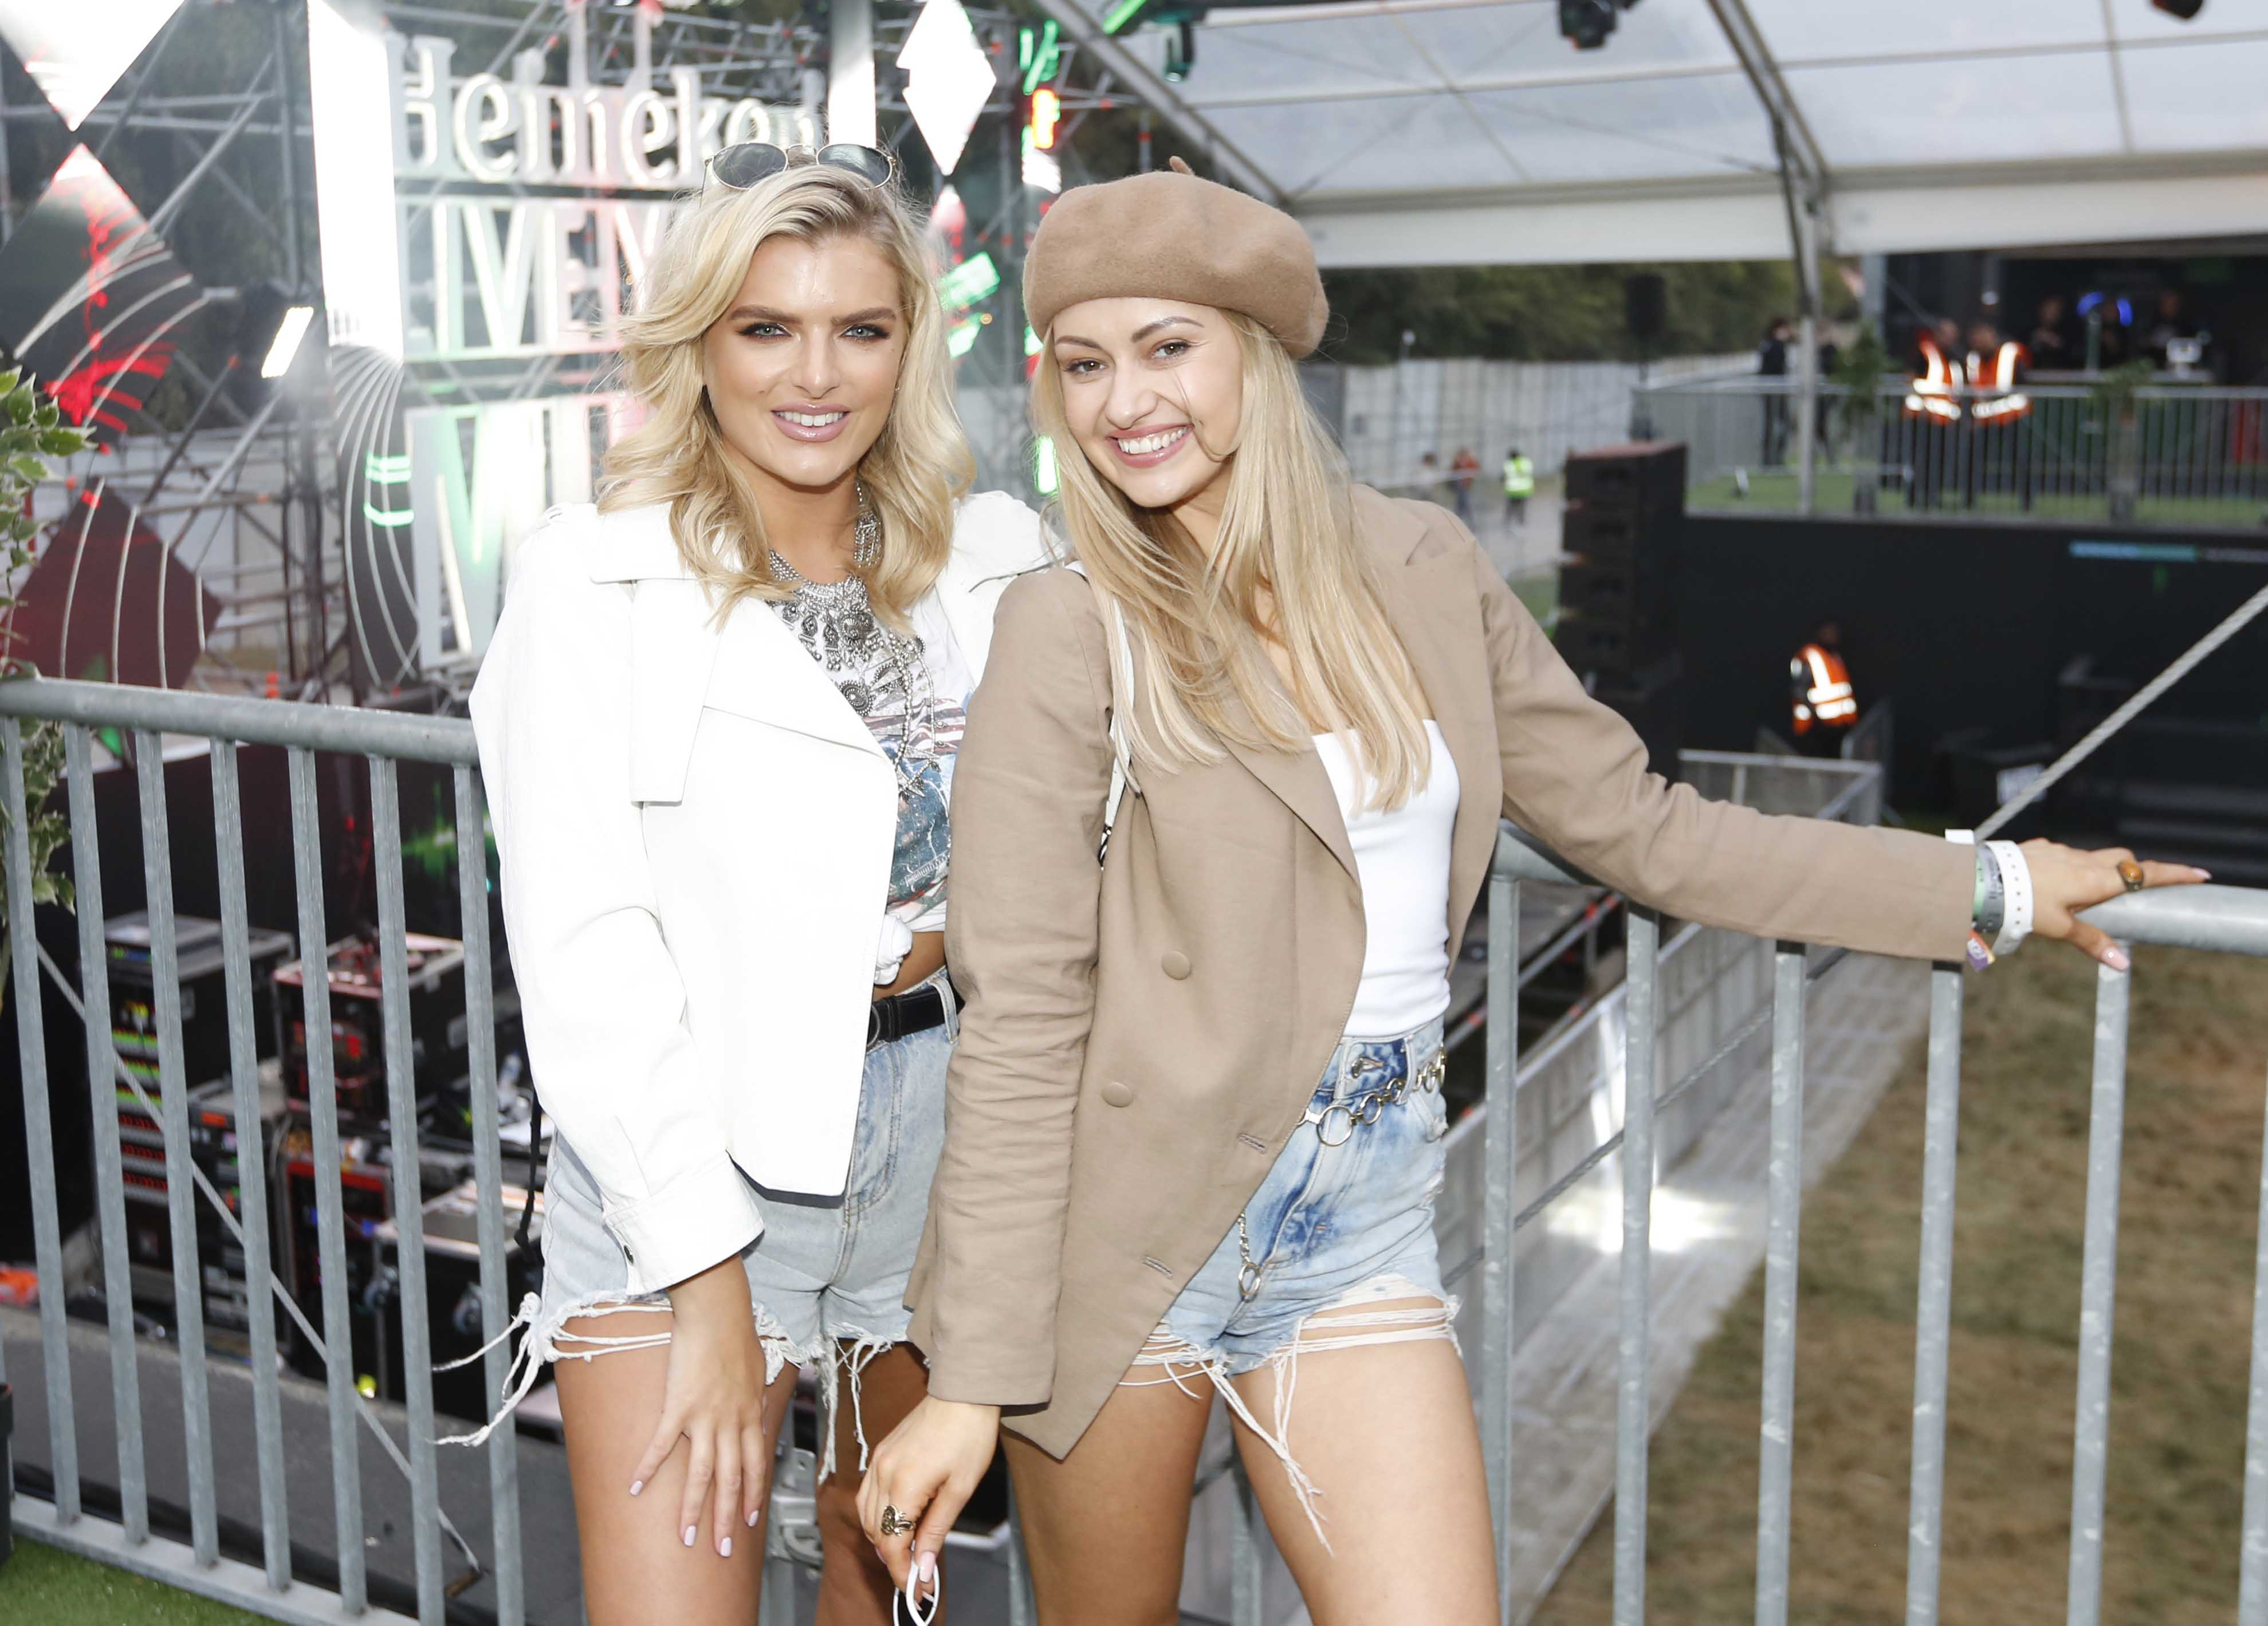 NO REPRO FEE 30/08/2019 Heineken Live Your Music Stage at Electric Picnic 2019. Pictured are (LtoR) Ashley Kehoe & Fiona Killion at the Heineken Live Your Music Stage at Electric Picnic 2019. This year's area is an enormous structure on two levels, with a glass roof that will keep festival-goers dry but let them dance beneath the sun and stars! The immersive and interactive lightshow has been reimagined for 2019 which, combined with the state-of-the-art soundsystem, make Live Your Music the most impressive festival stage in the country. Photo: Sasko Lazarov/Phorocall Ireland